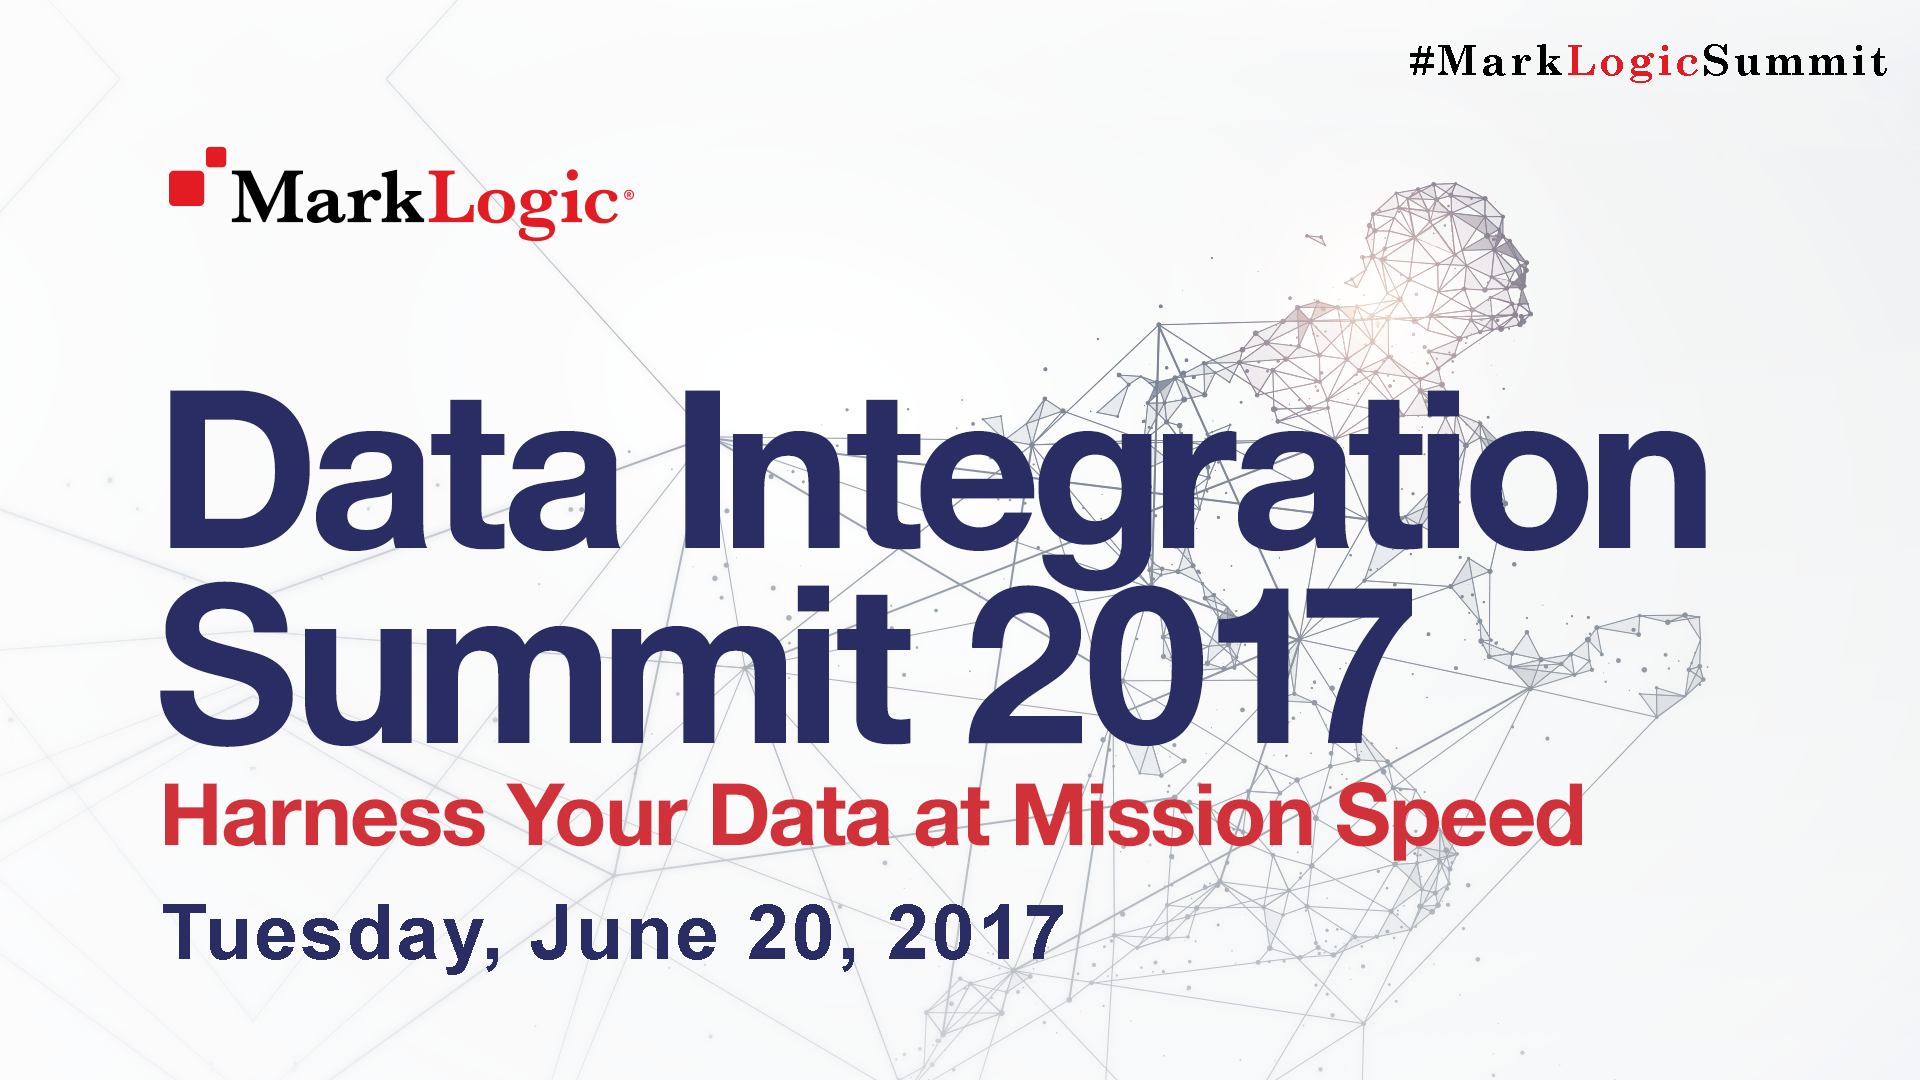 mL_data_integration_summit.png